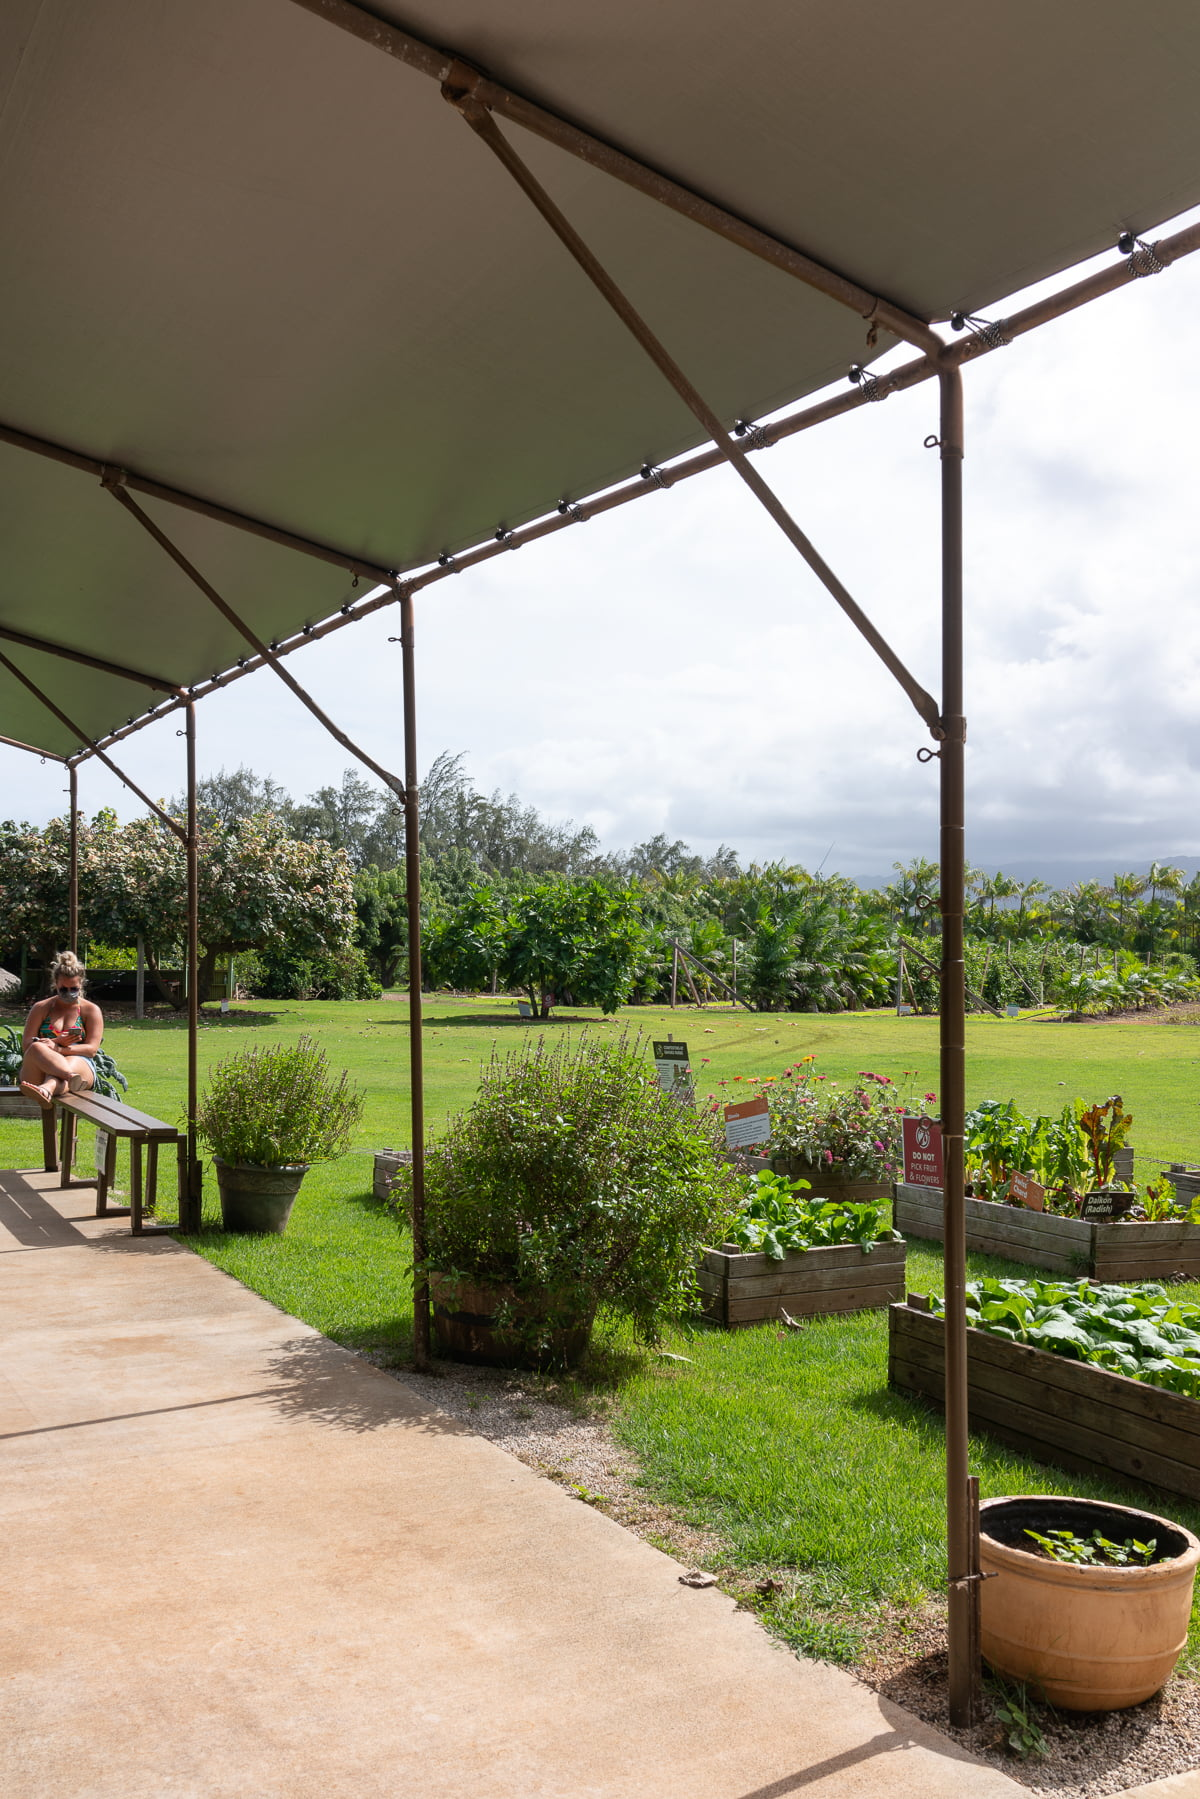 Looking out into the farming area of Kahuku Farms.